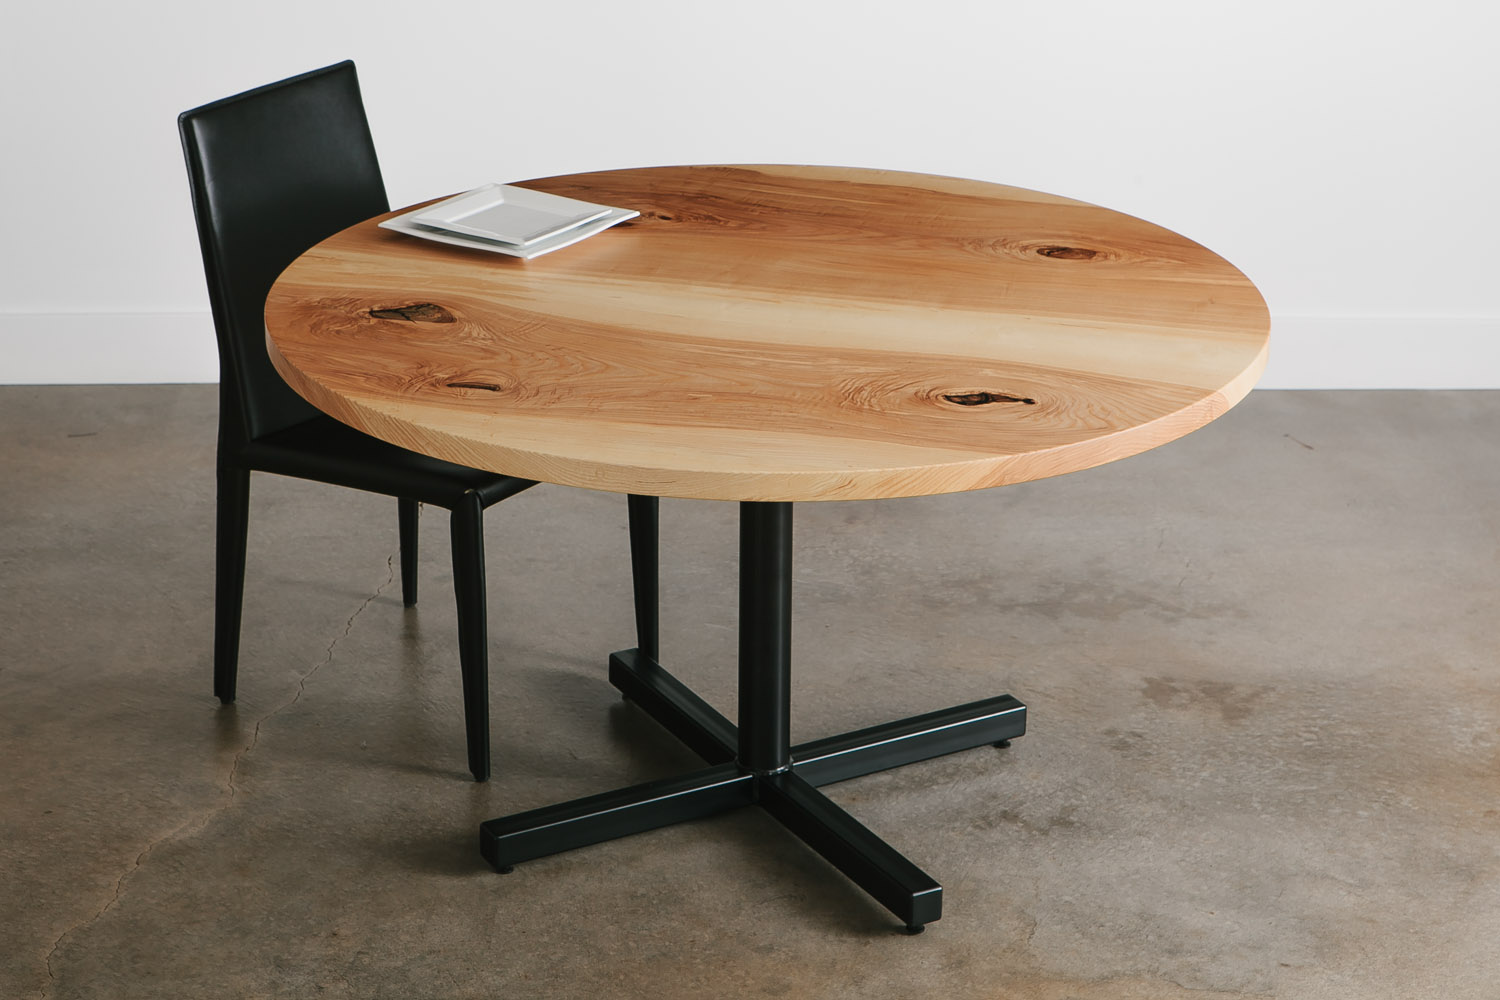 Round live edge ash table for coworking space